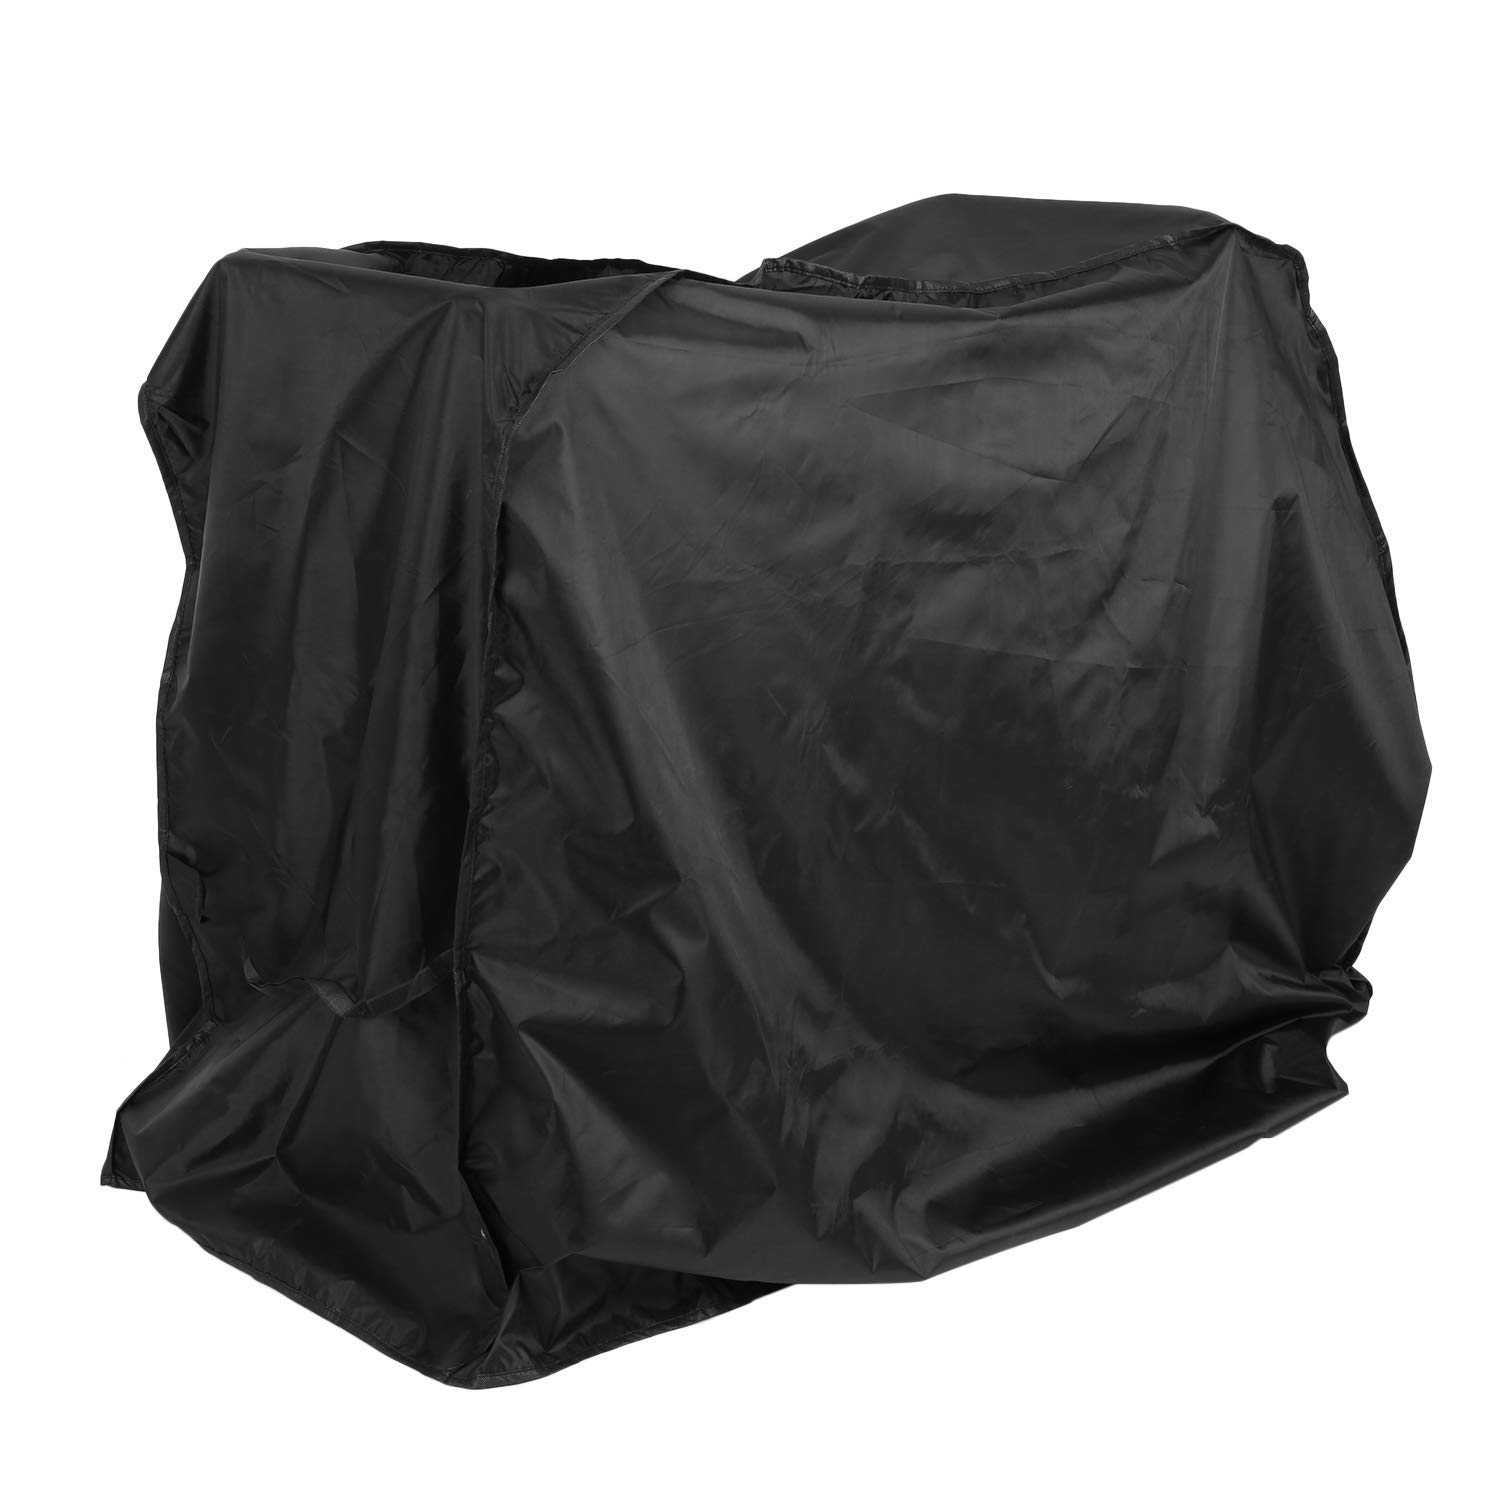 Foreverharbor 190T 210D Outdoor BBQ Grill Covers Gas Heavy Duty for Home Patio Garden Storage Waterproof Barbecue Grill Cover BBQ Accessories(Color:Black)